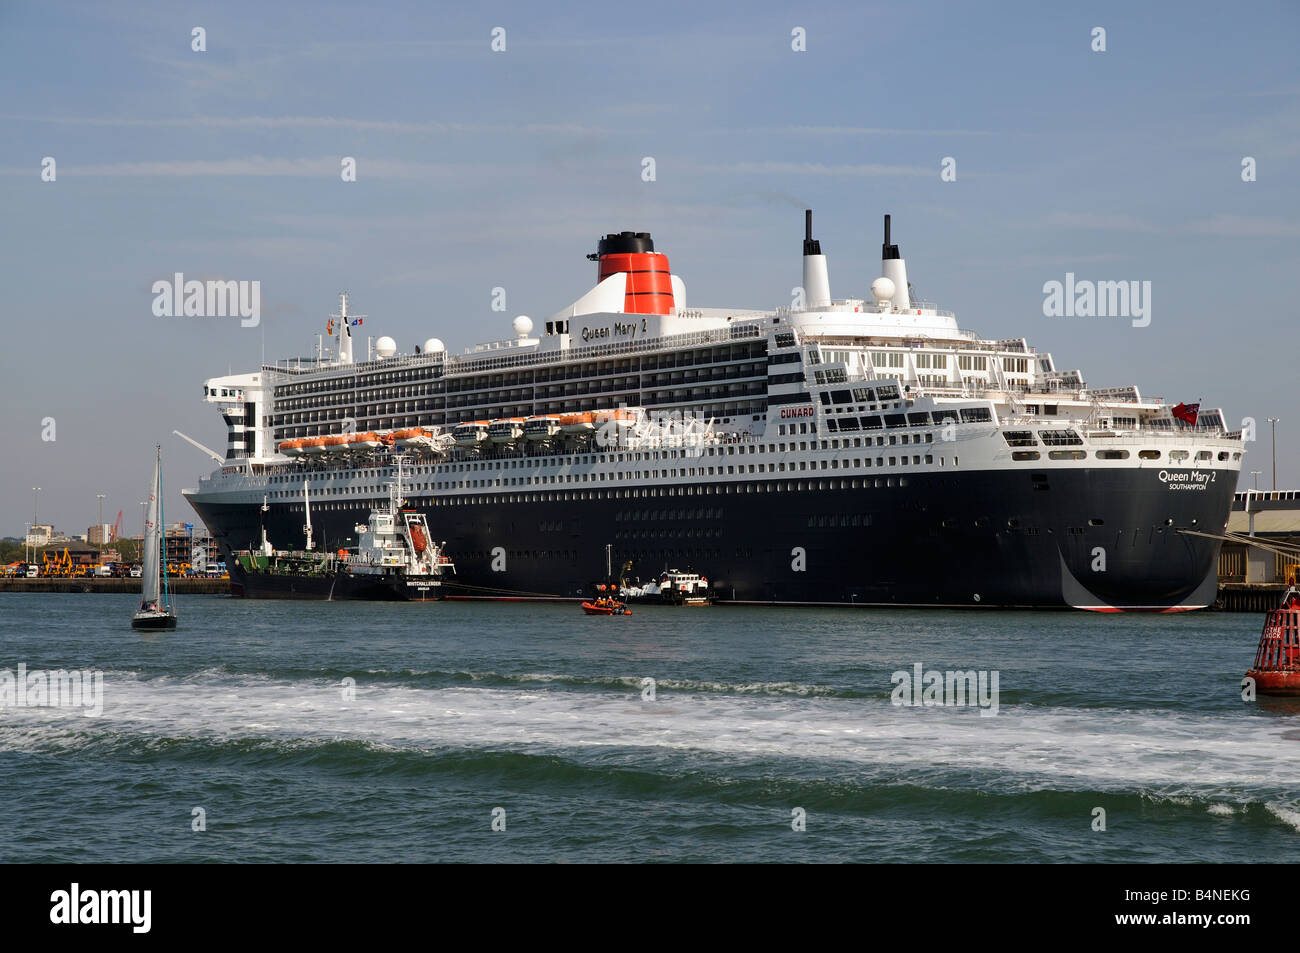 Port of Southampton England UK Queen Mary 2 and MV Whitchallenger a fuel oil bunkering vessel alongside - Stock Image